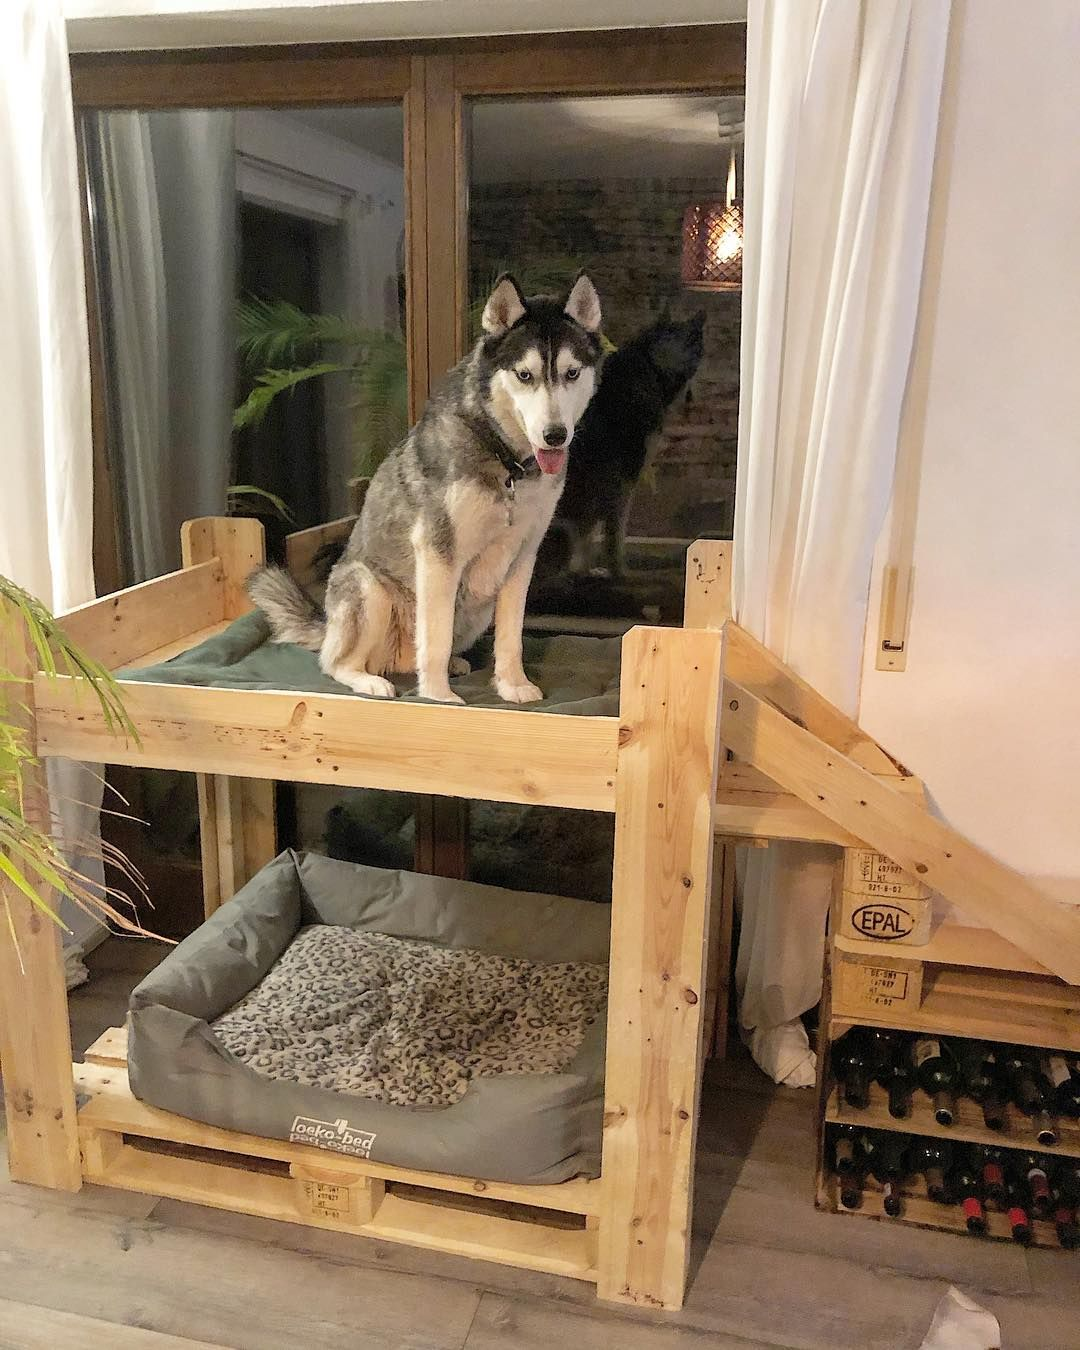 And The Dog House Has Stairs Indoordoghouse Indoor Cozydog